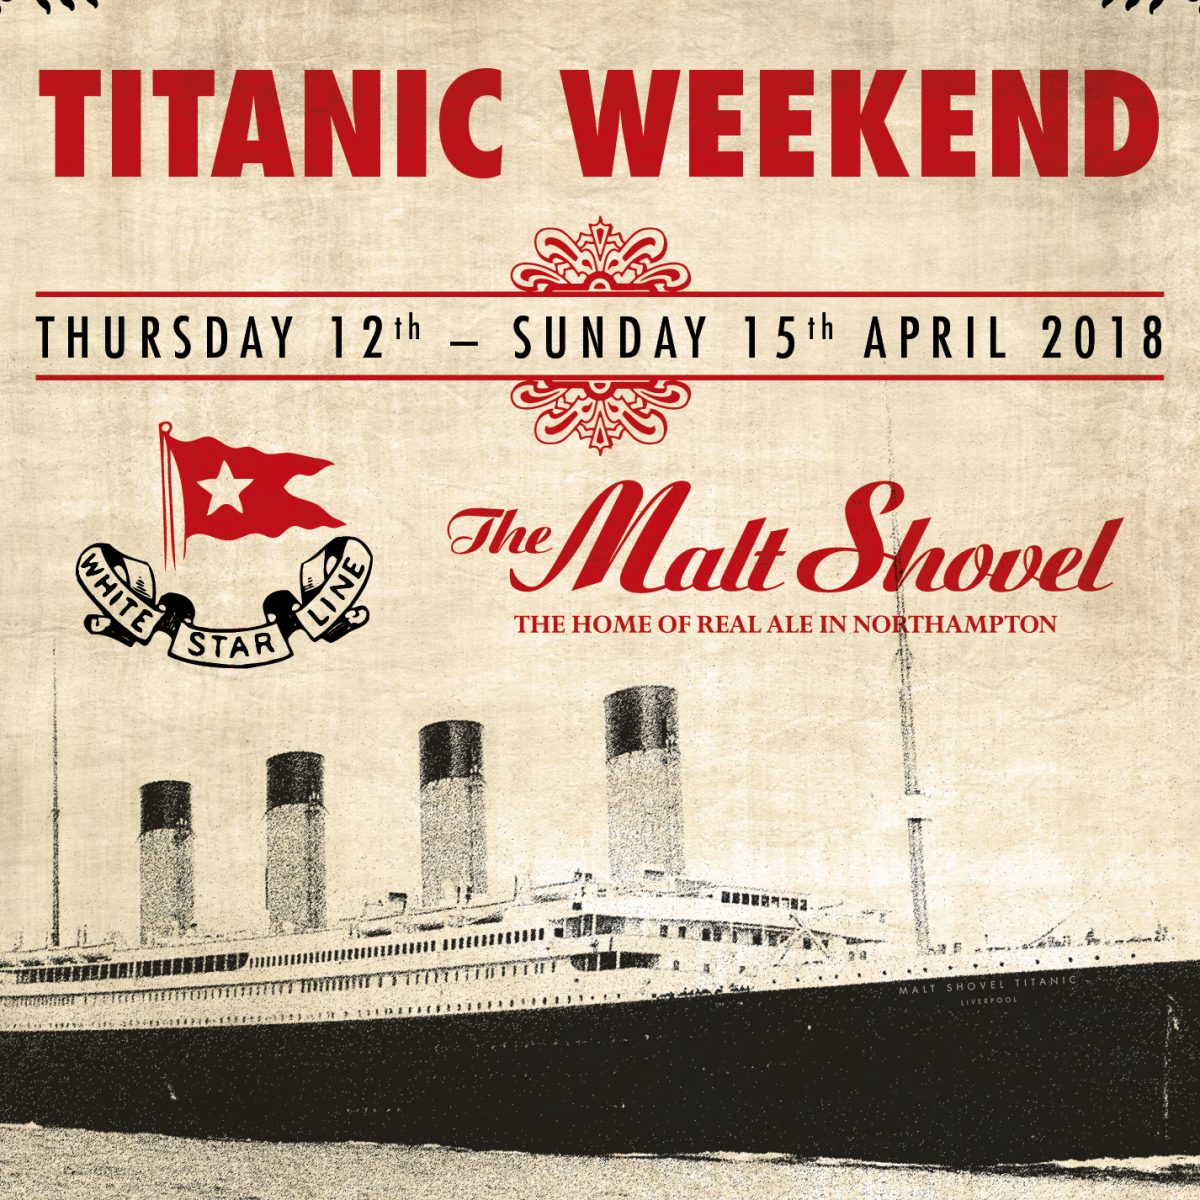 Titanic Weekend